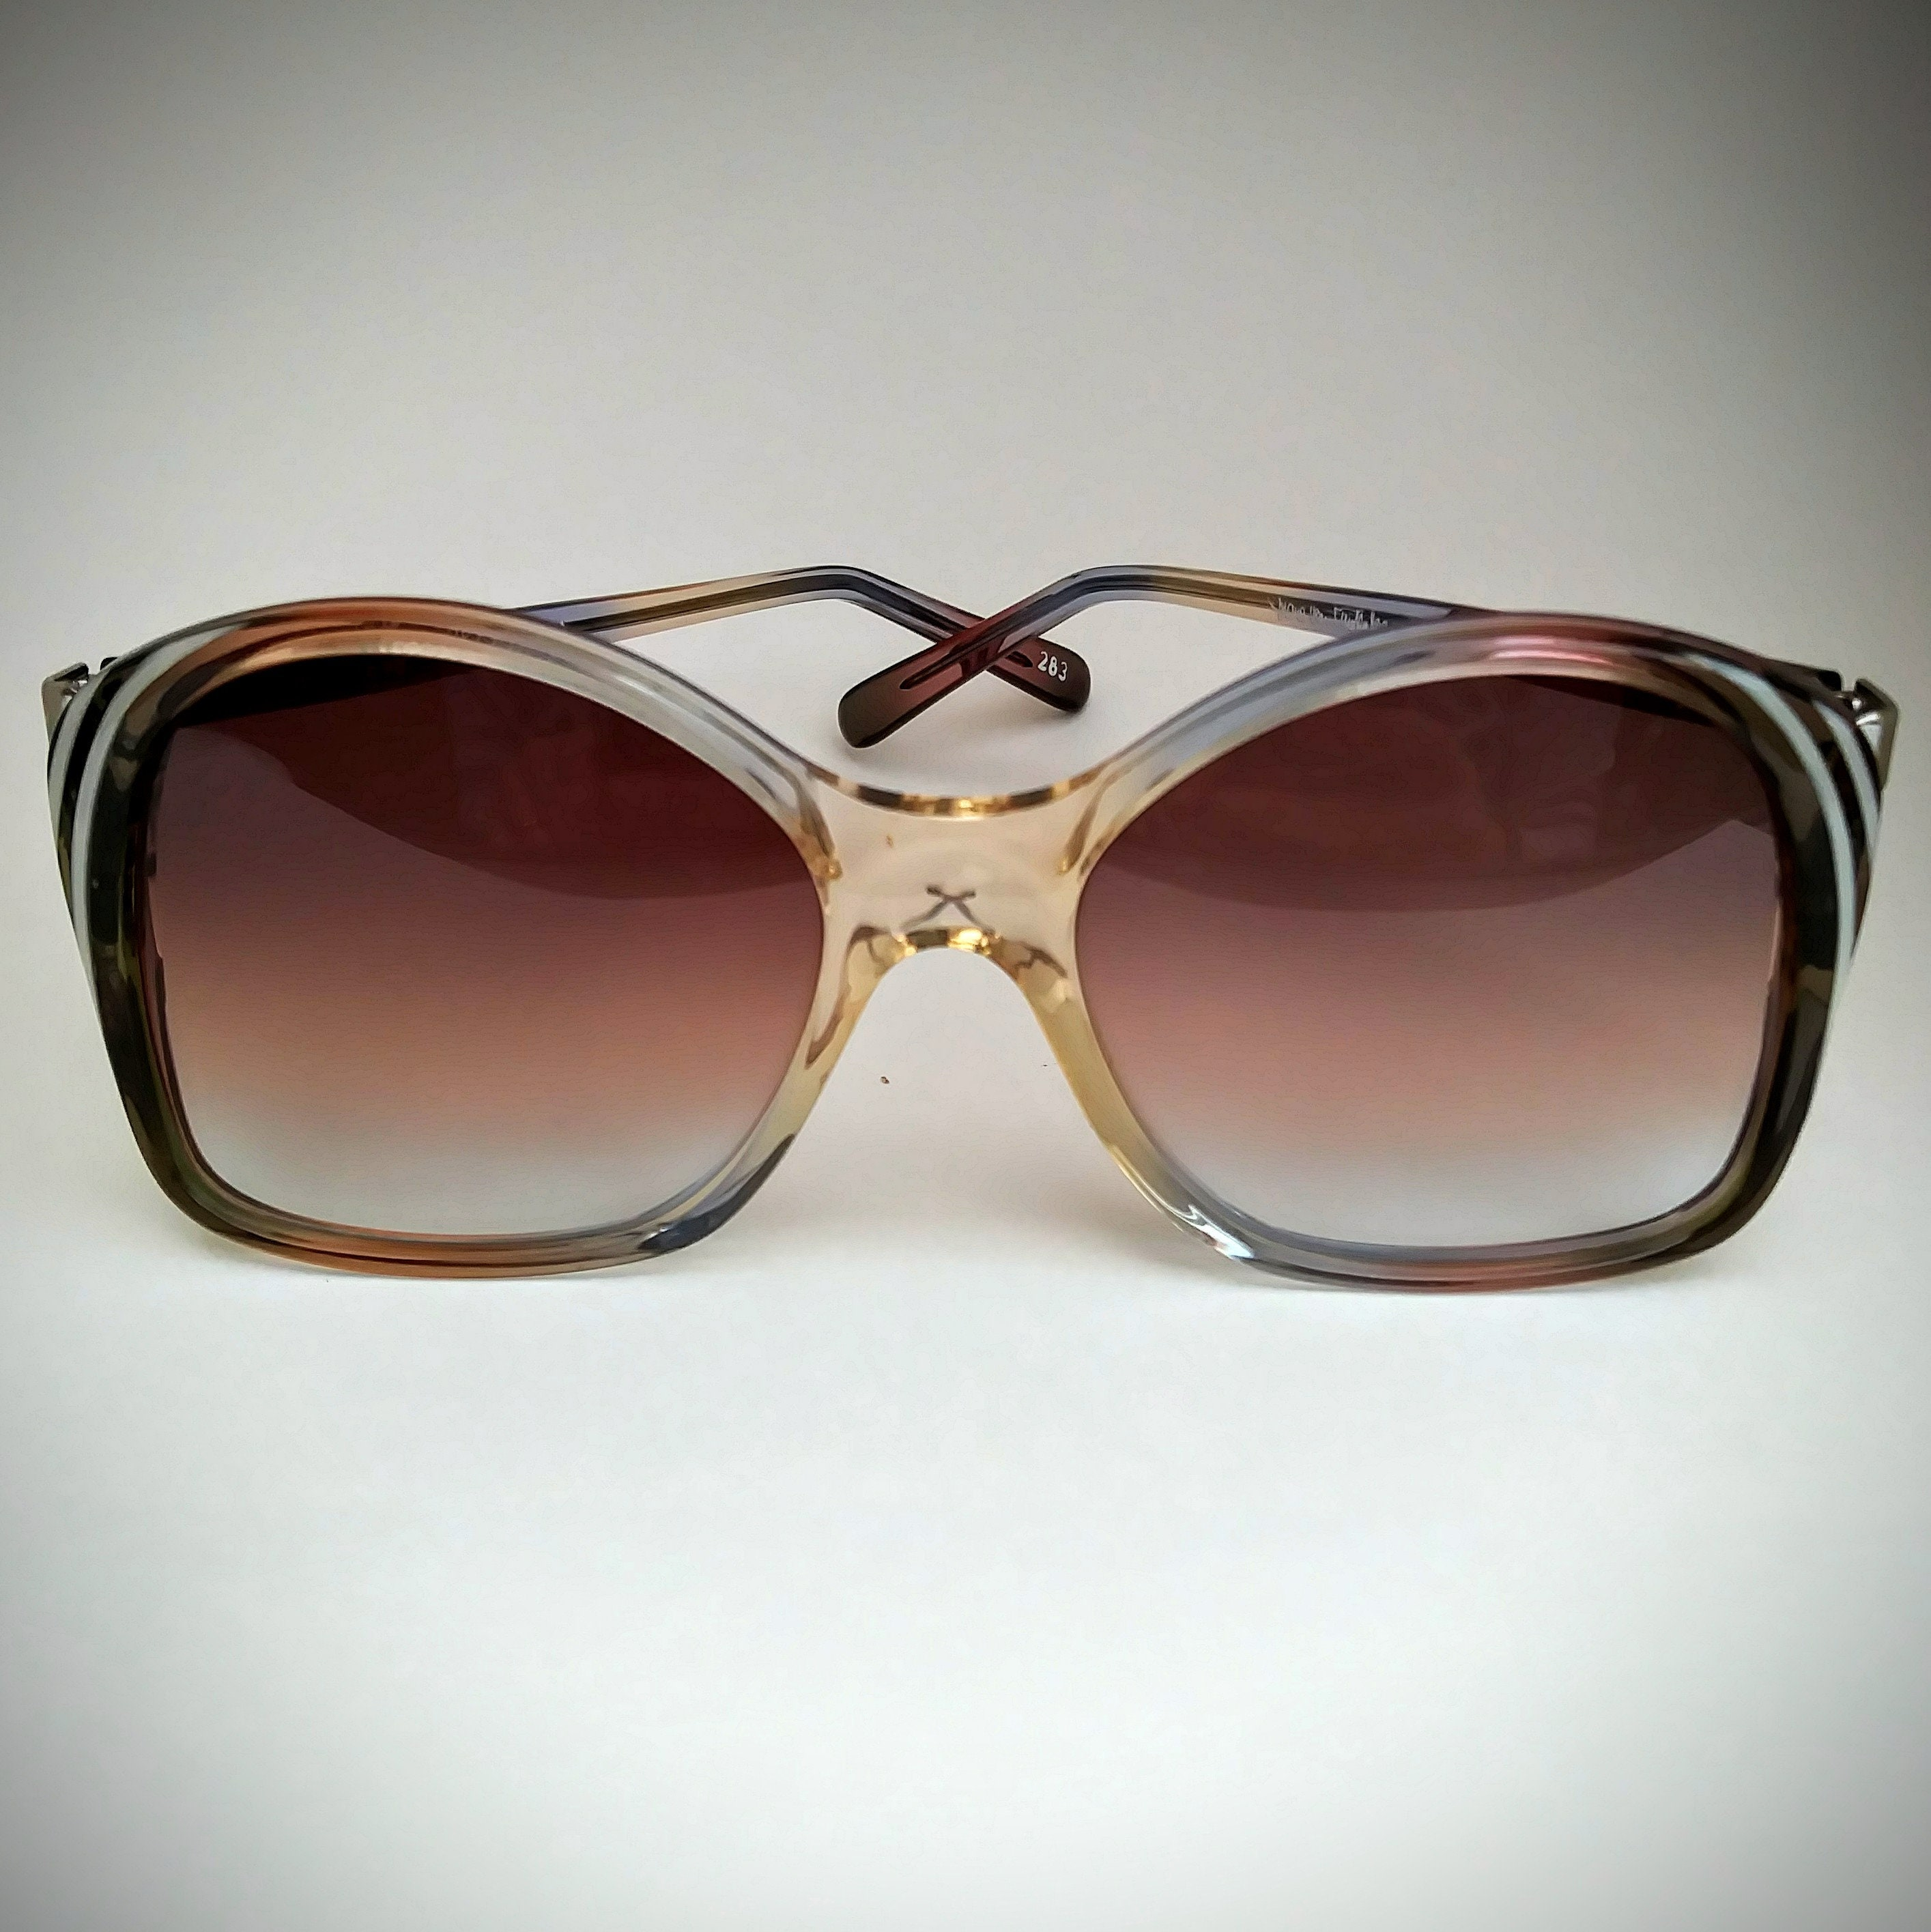 b71c181a0b DVF Non-Prescription NOS Vintage  Valencia  Butterfly Sunglasses with  Hand-Tinted Lenses  Ready-to-Wear